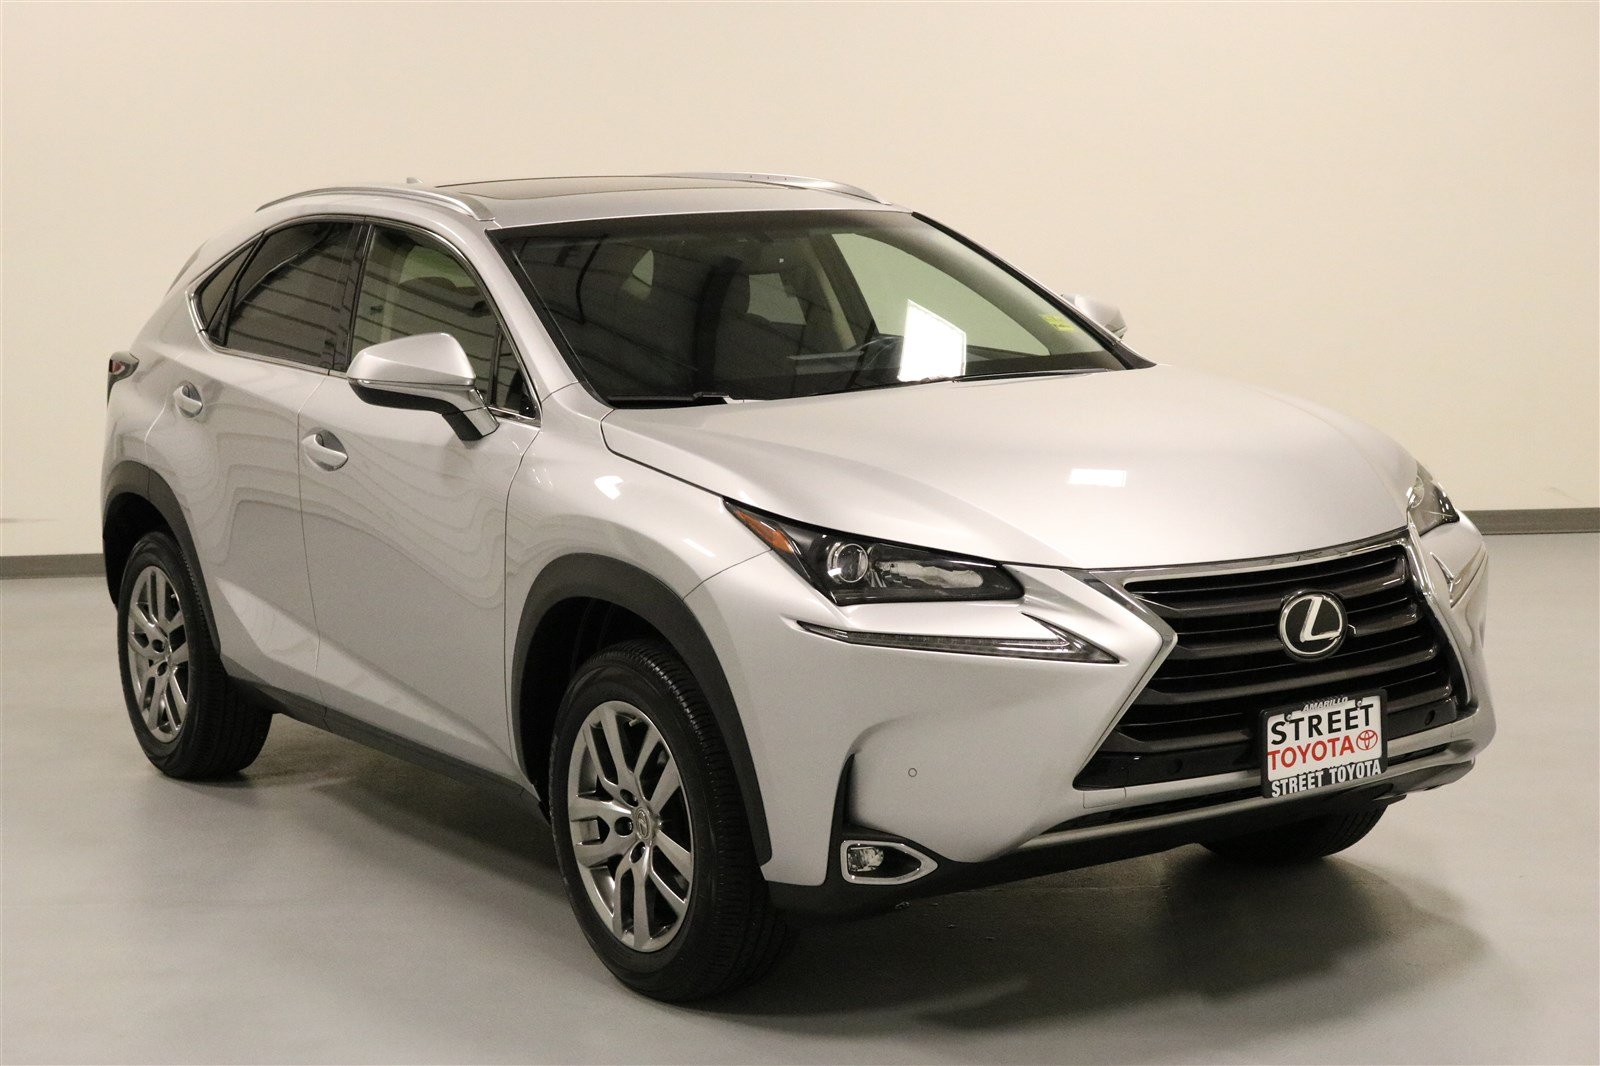 pre owned 2015 lexus nx 200t for sale in amarillo tx 44068. Black Bedroom Furniture Sets. Home Design Ideas